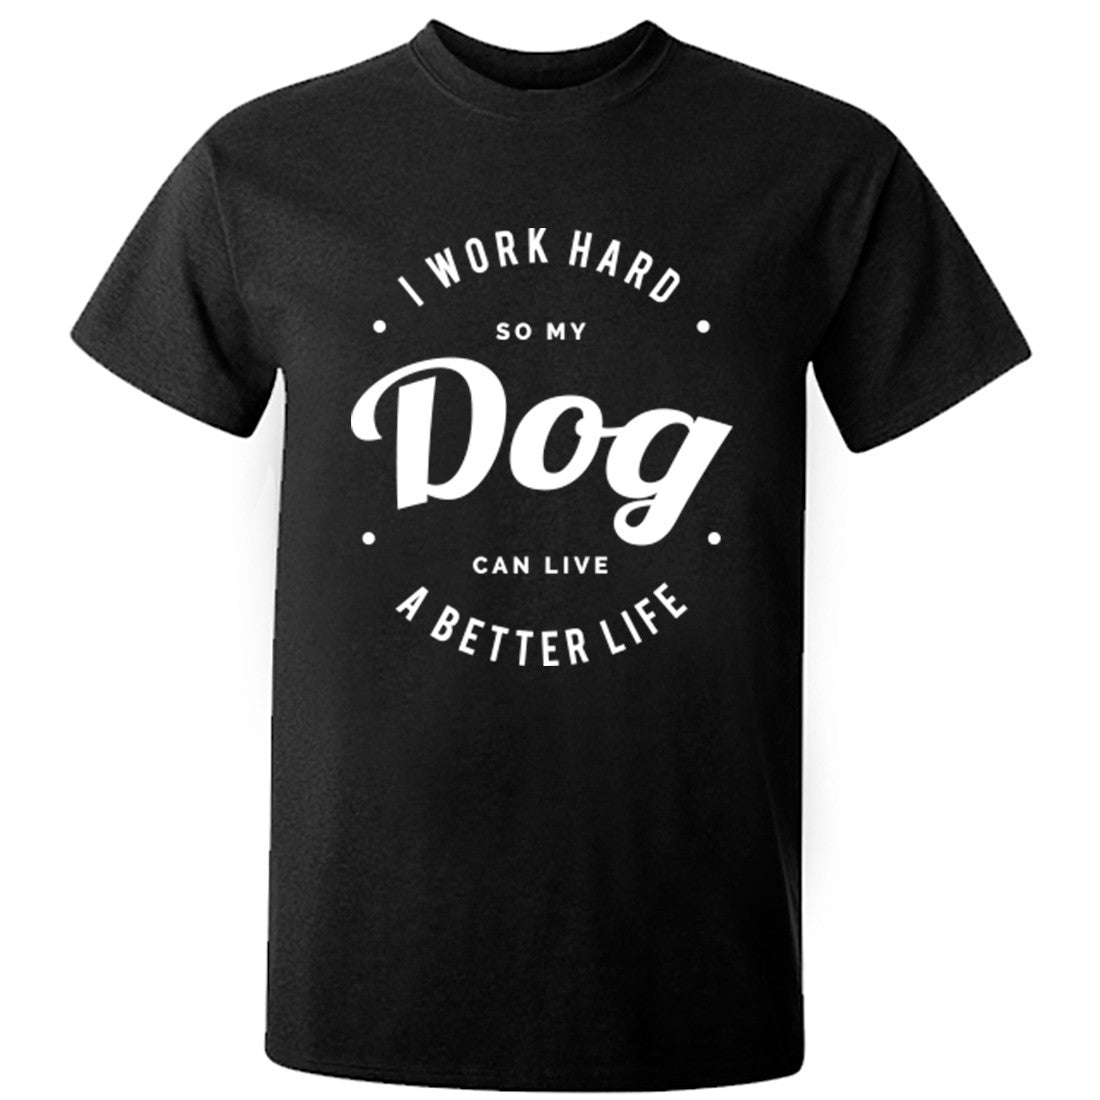 I Work Hard So My Dog Can Live A Better Life Unisex Fit T-Shirt K0431